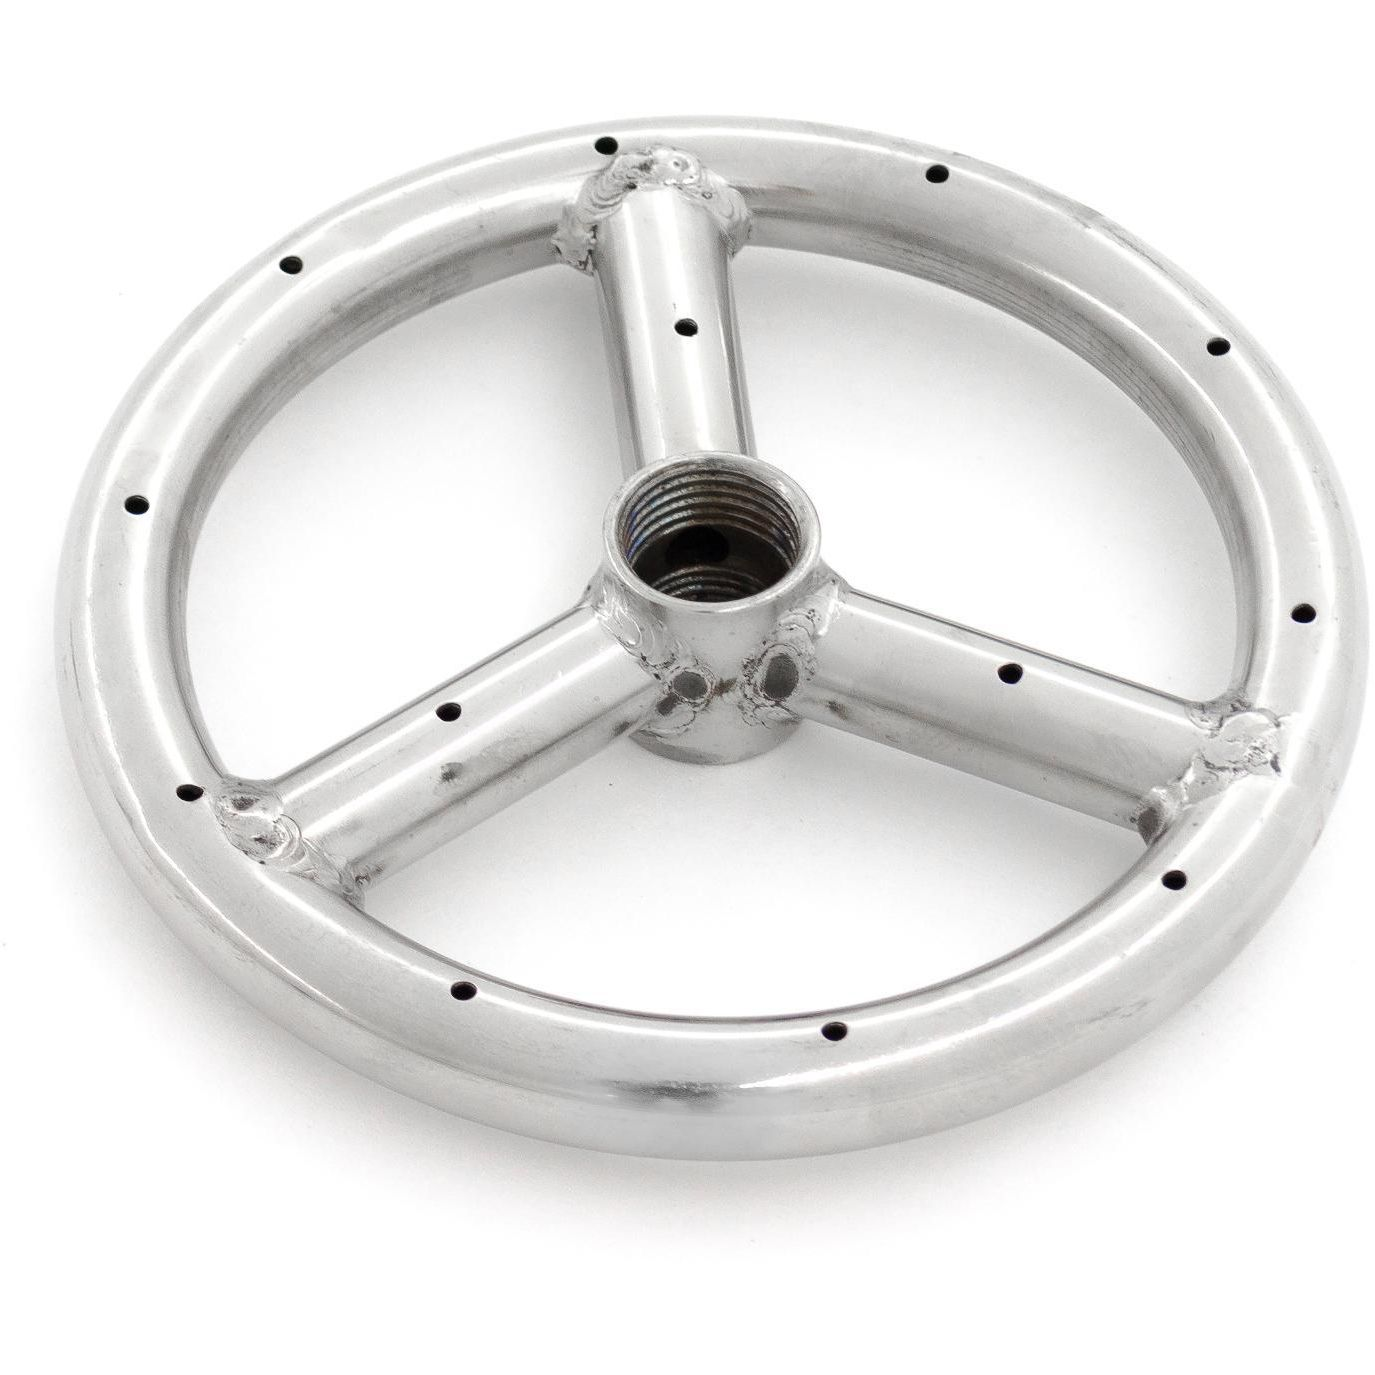 6 Inch Round Fire Pit Burner Ring Stainless Steel